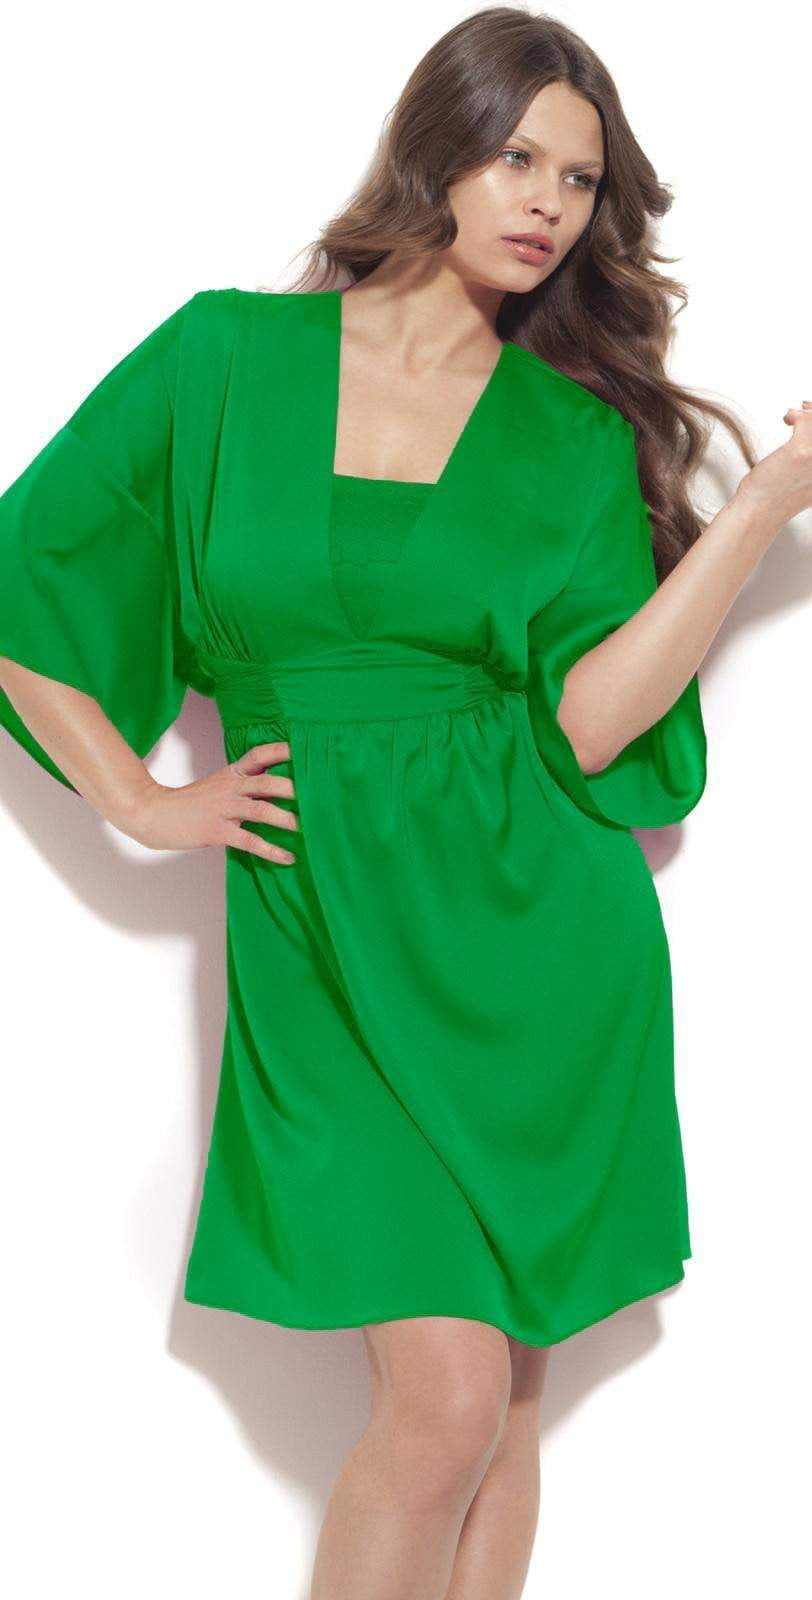 Gottex Mikado Leopard Dress in Green M03-612-316: